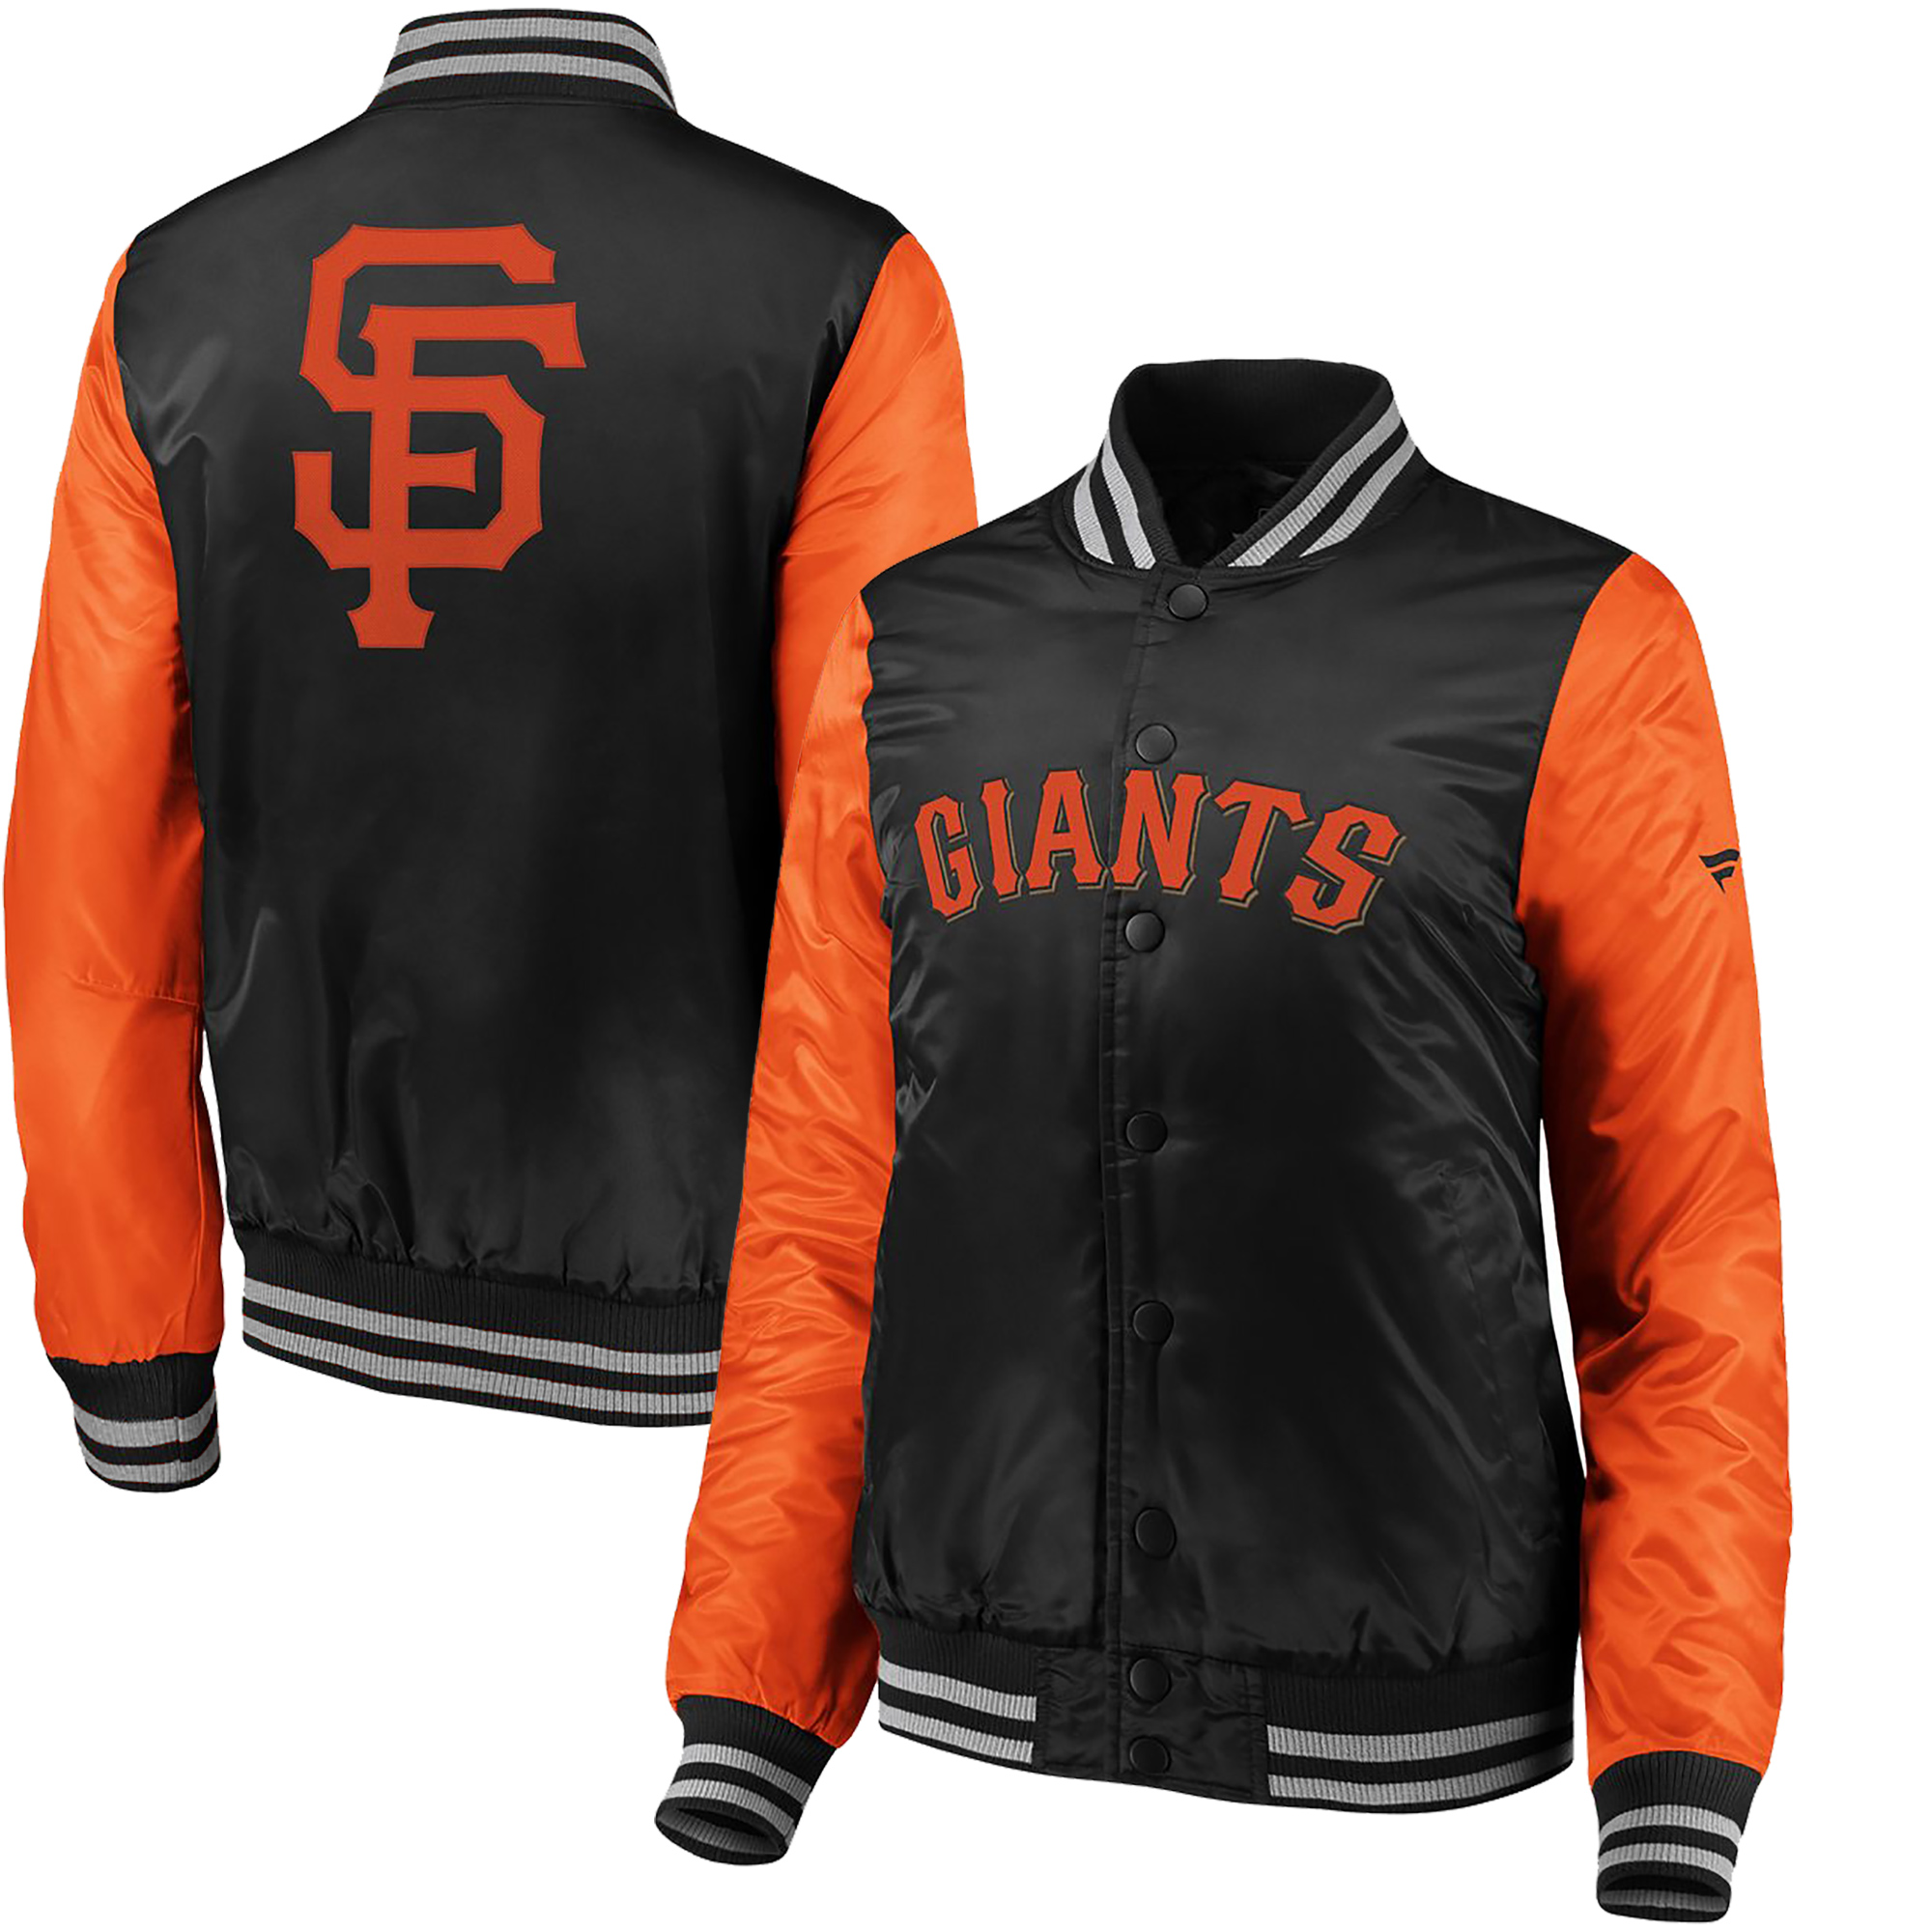 San Francisco Giants Fanatics Branded Women's Iconic Satin Jacket - Black/Orange